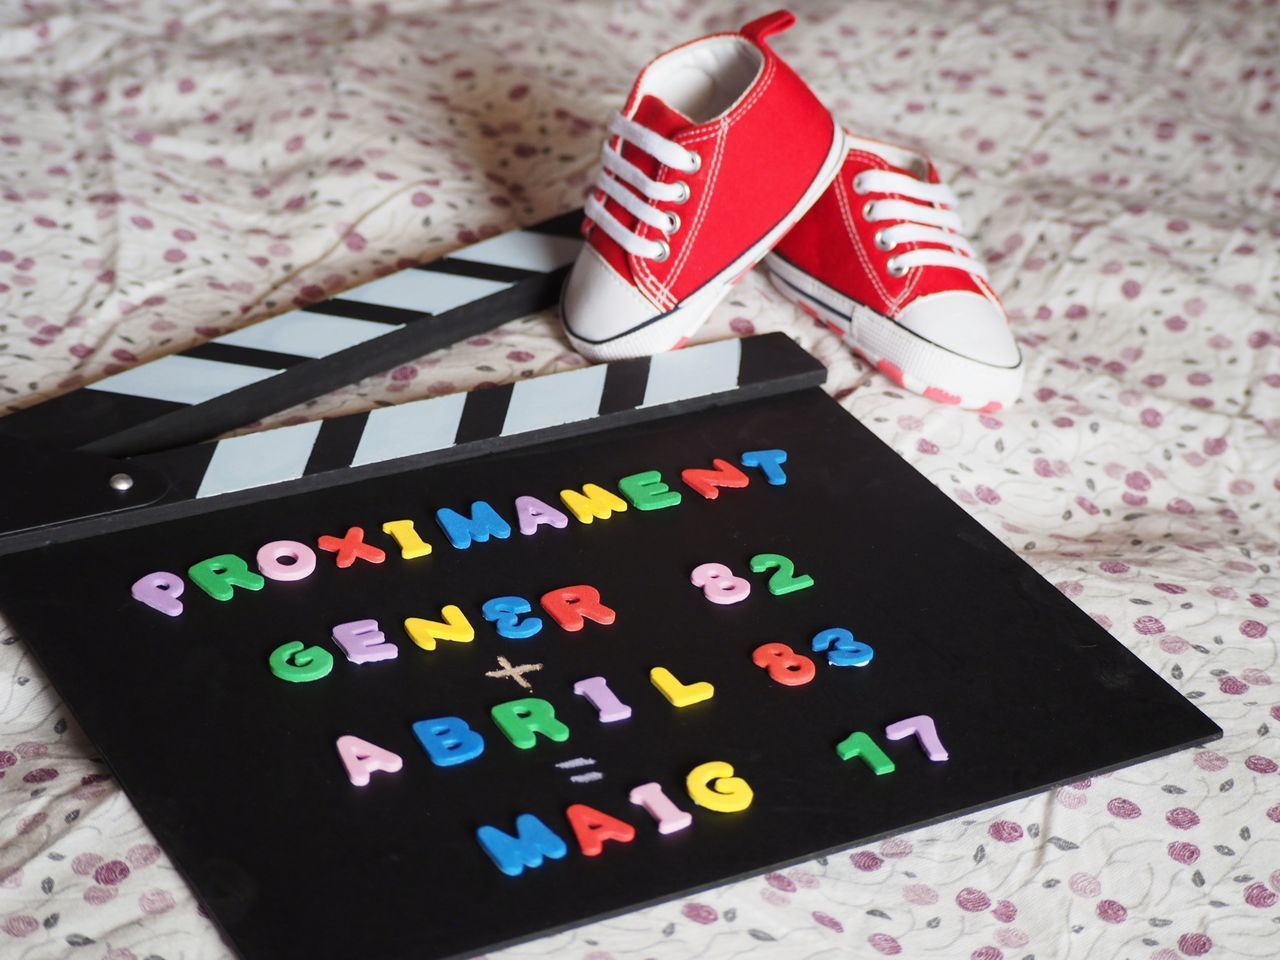 The best chapter of our lives is for comming yet!🎬👪 Comming soon: January 82+April 83= May 17 Love Expecting Babies Pregnancy Announcement Pregnant Life Converse Shoes Pregnant Days Pregnant Photography I Am Pregnant Film Movie Filming Clapperboard